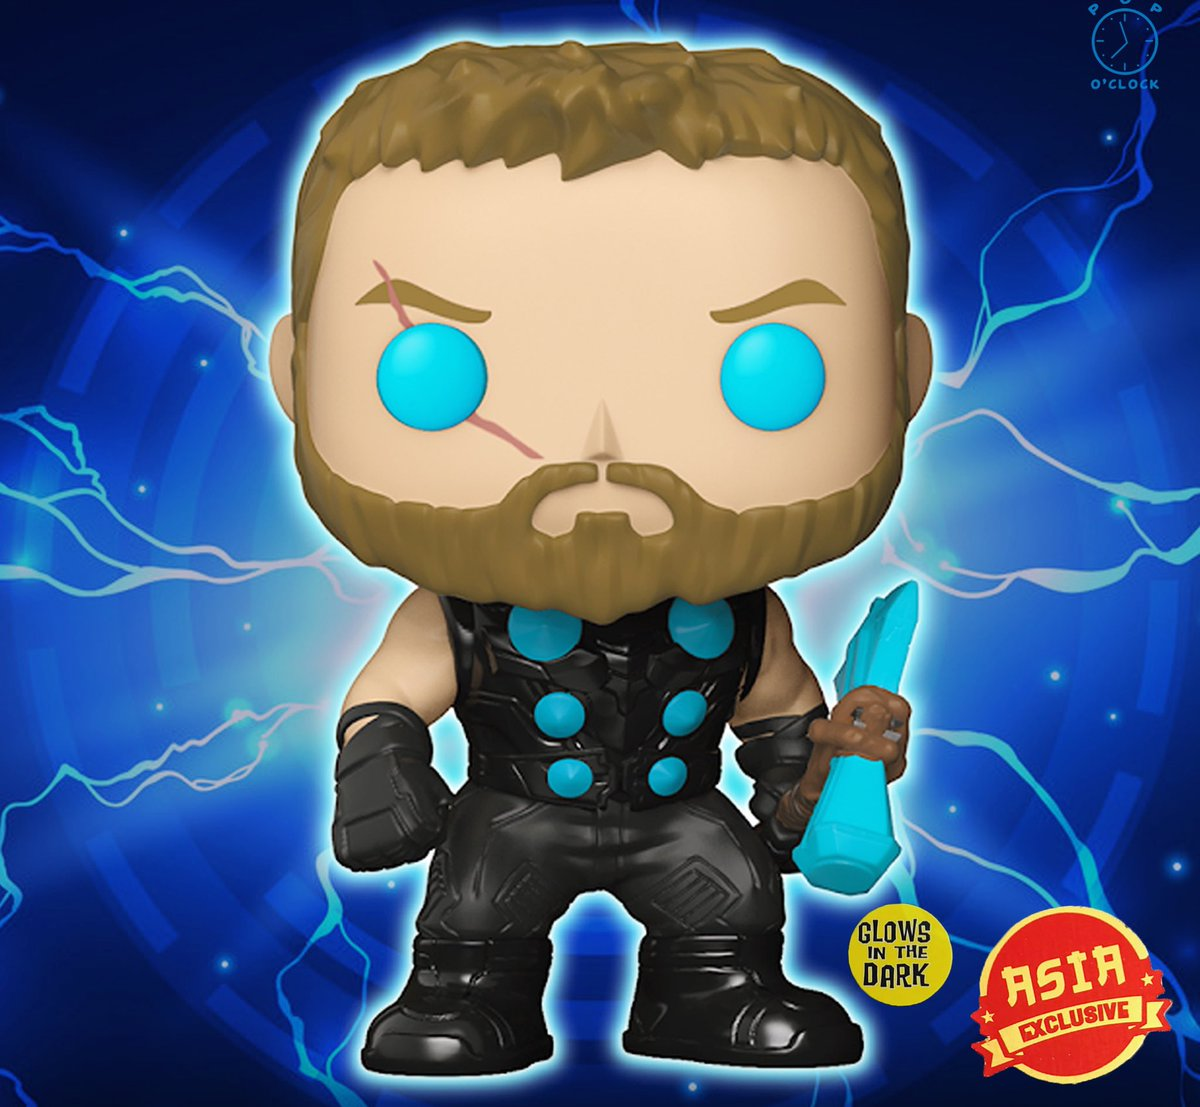 🎁 🔥 GIVEAWAY 🔥 🎁  One lucky follower will win a Thor Asia  Exclusive Glow In The Dark Pop!  Rules: - RT & Follow @pop_o_cIock  - Follow us on Instagram: http://instagram.com/pop_o_clock/  Winner will be selected via Instagram on 2/28. ⏱👀 Good luck!